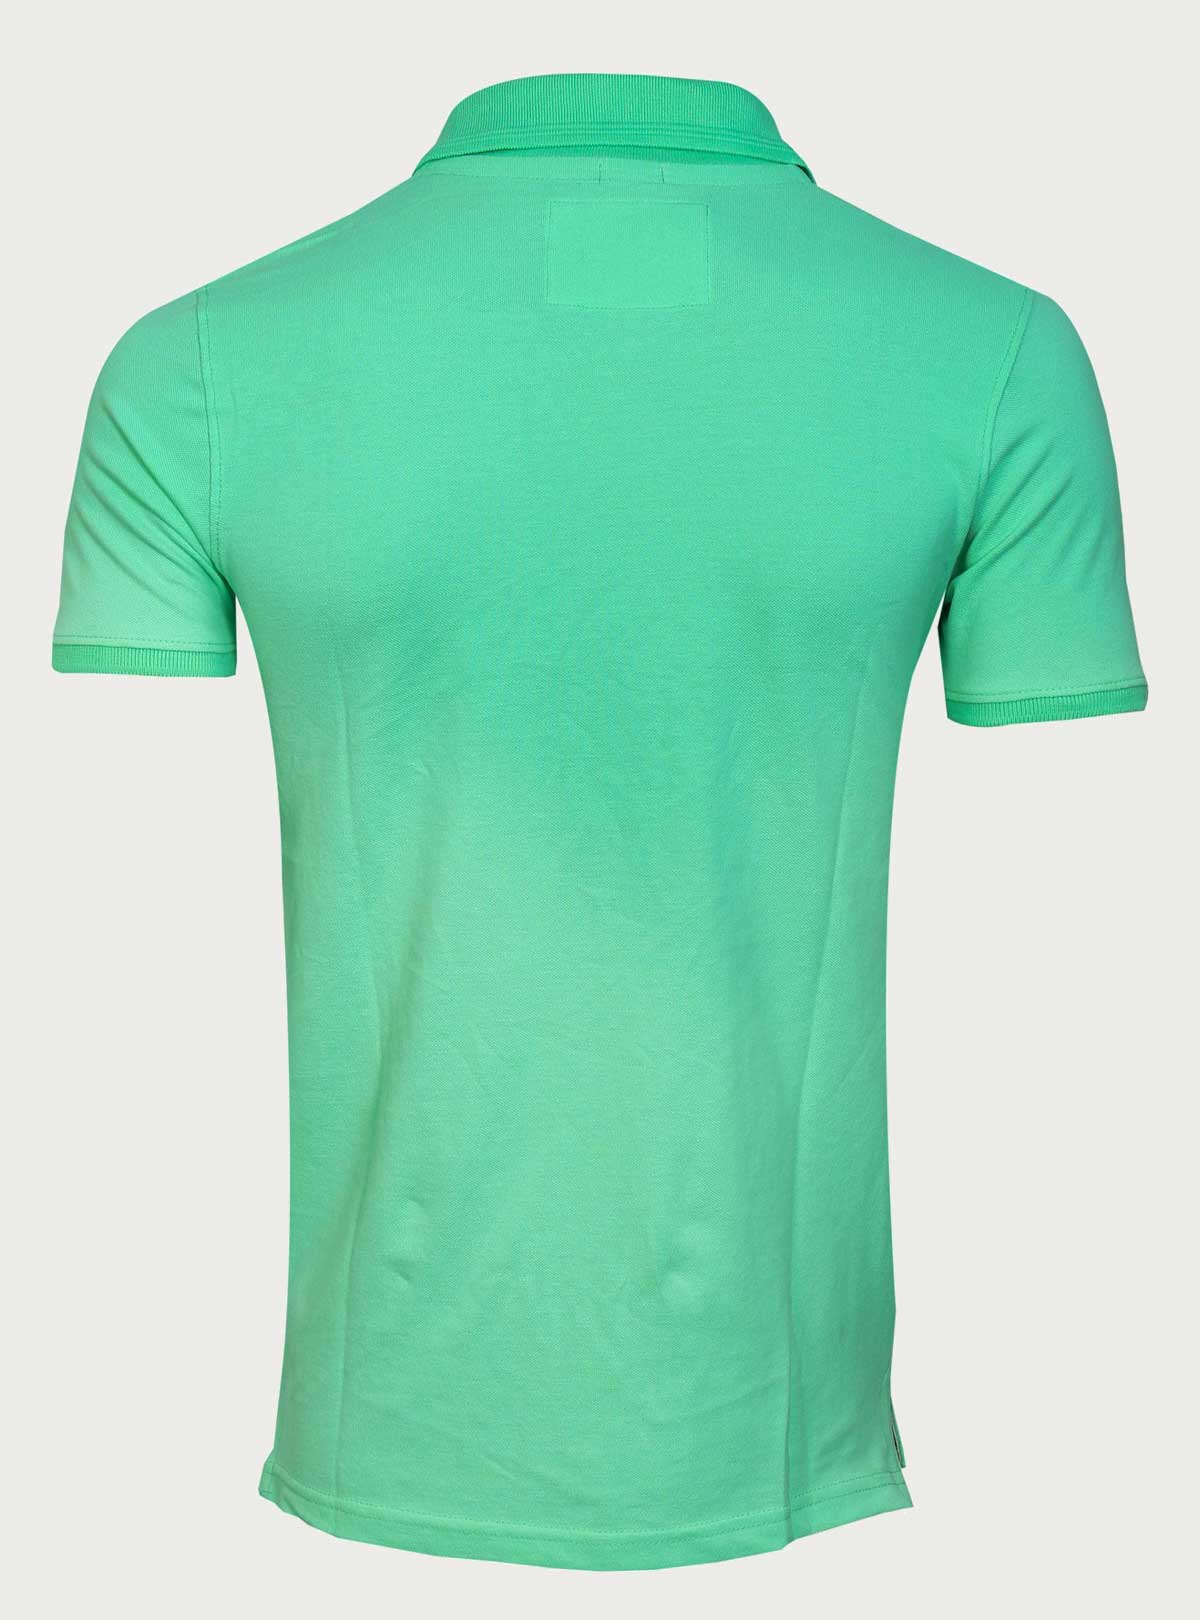 STYLISH POLO T-SHIRT